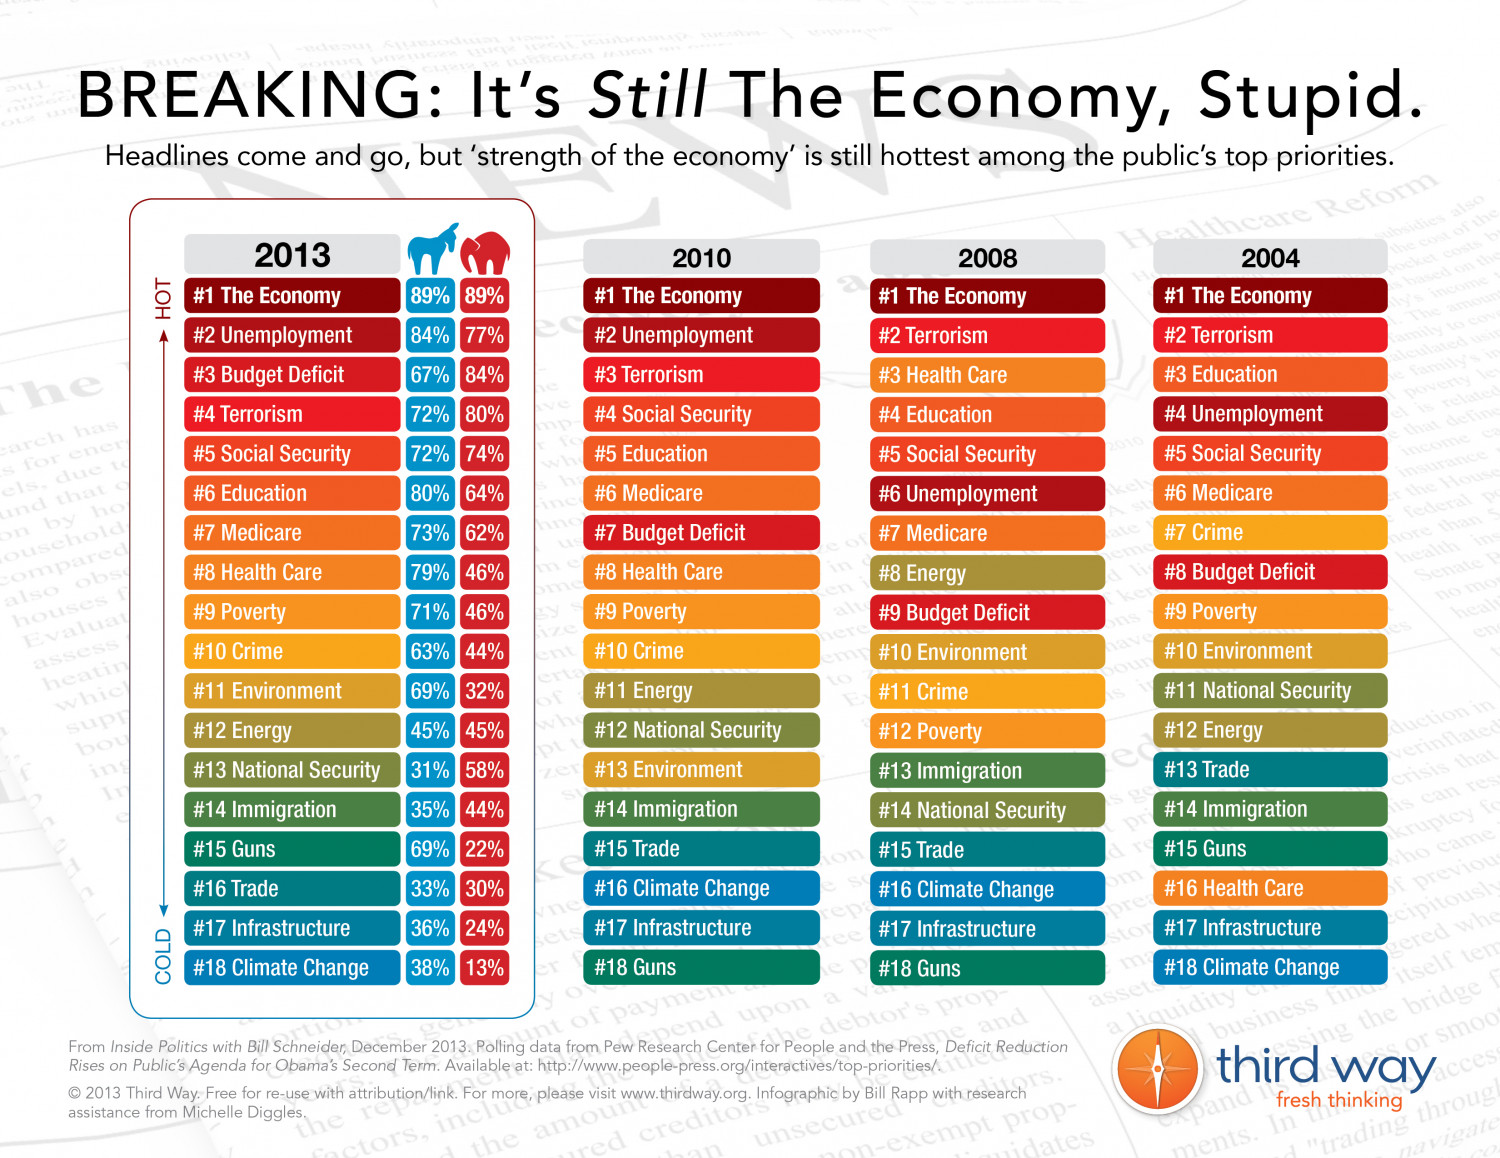 BREAKING: It's Still the Economy, Stupid. Infographic